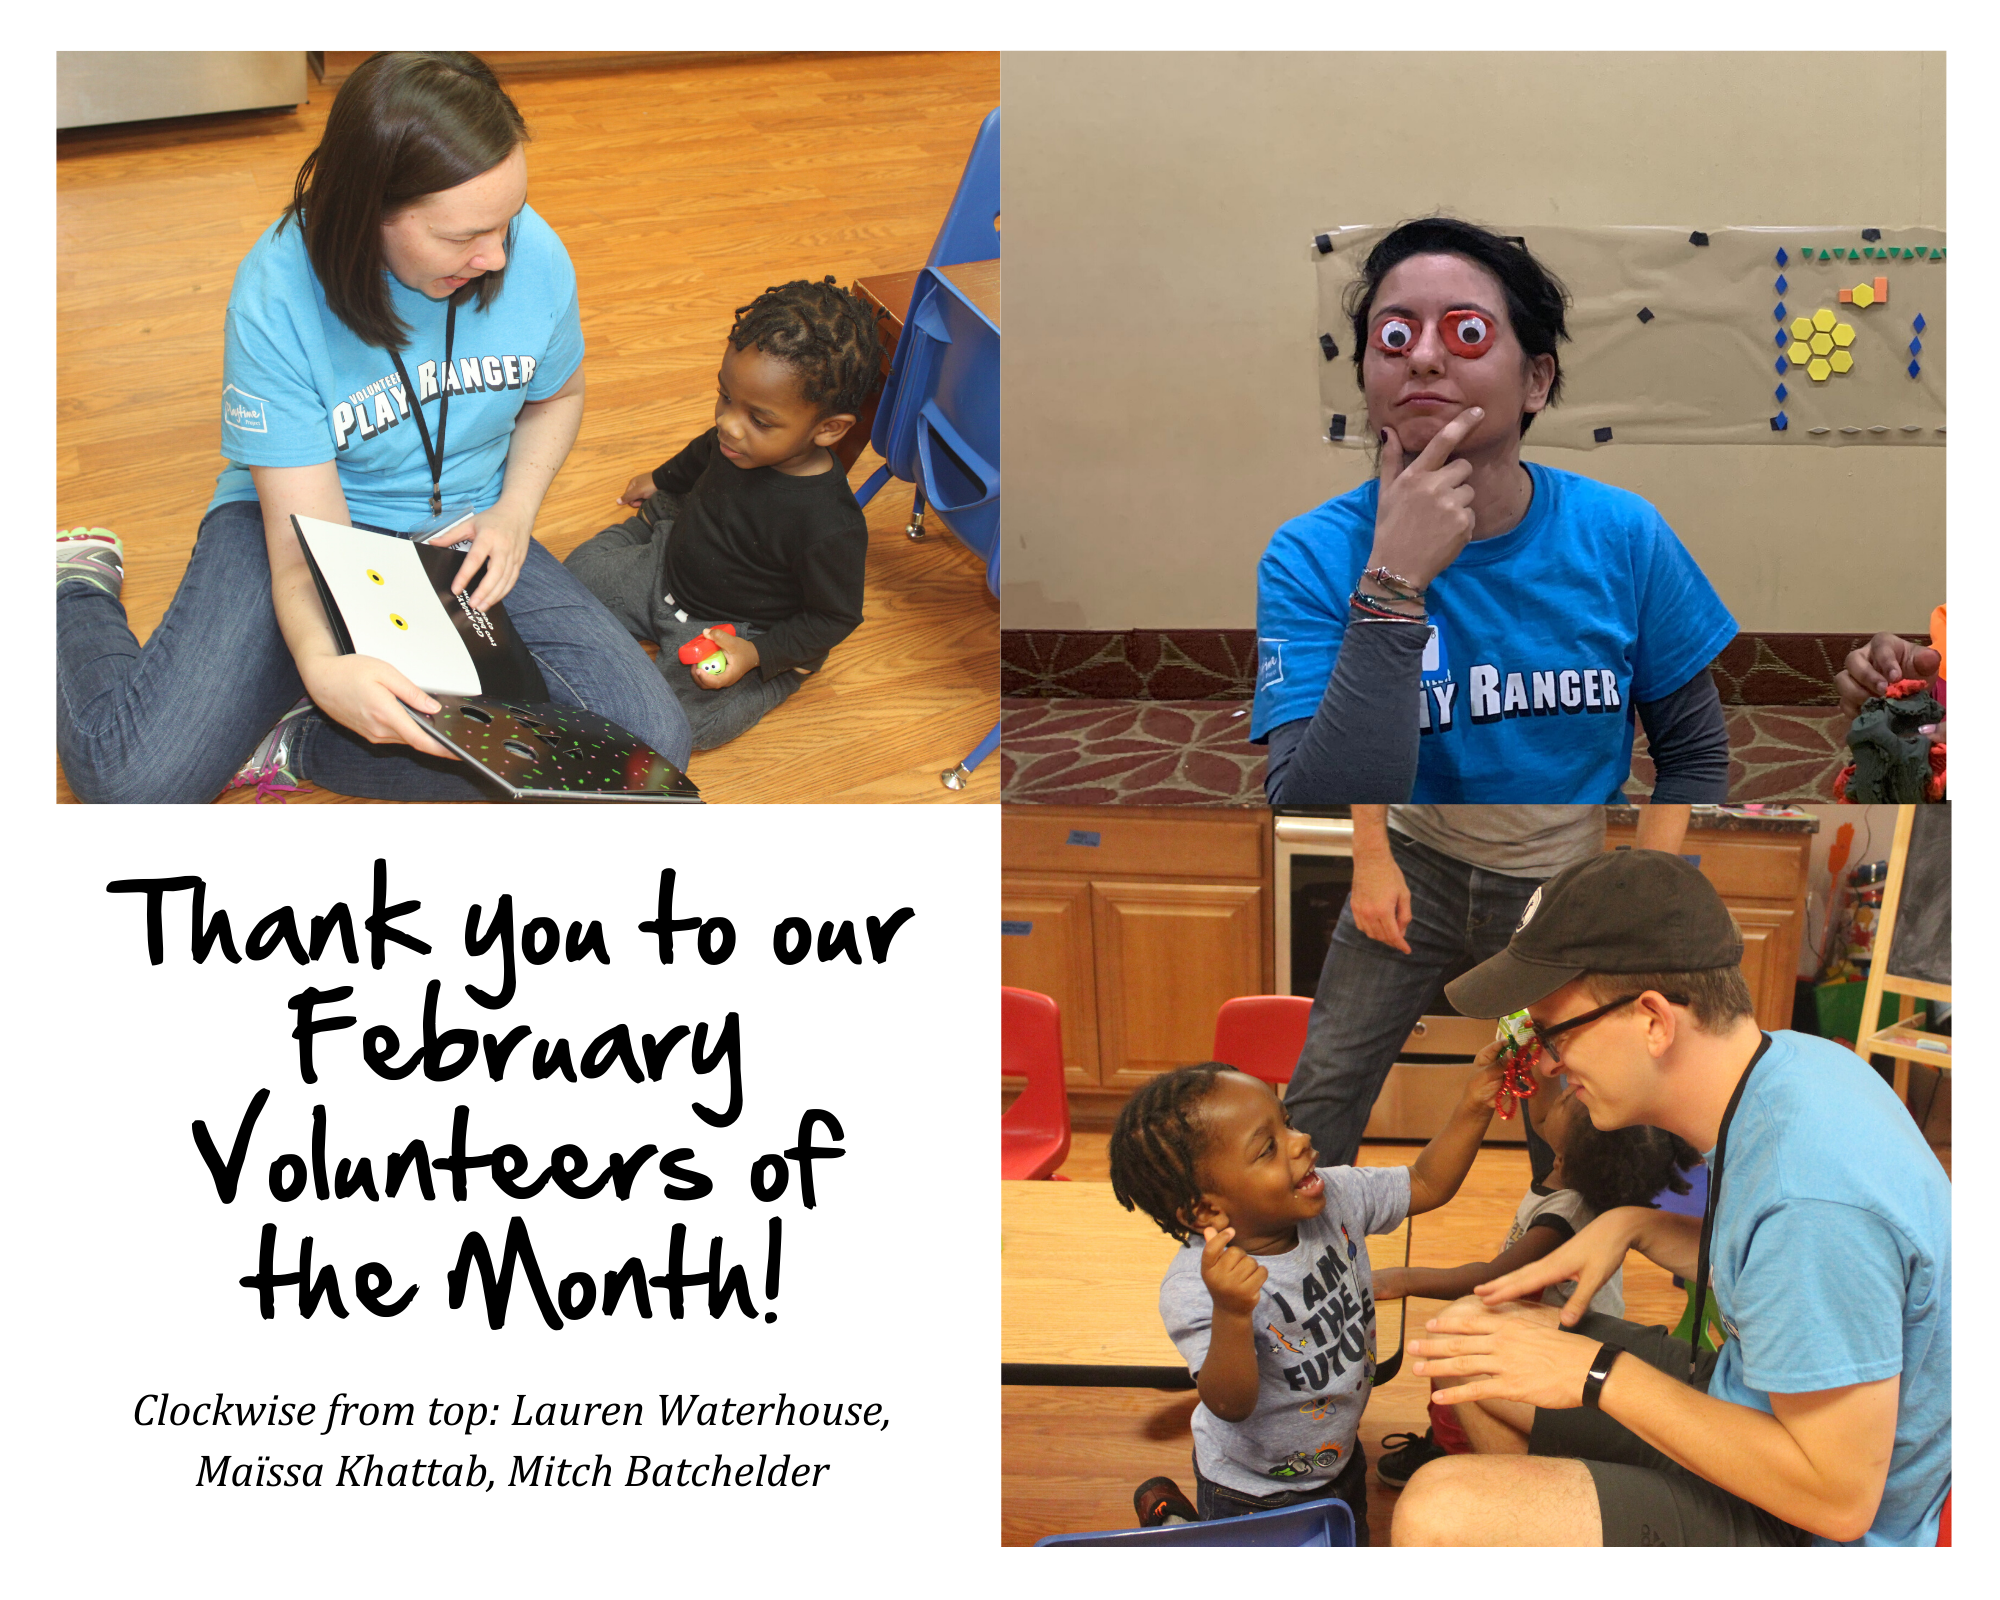 Meet All of Our February Volunteers of the Month